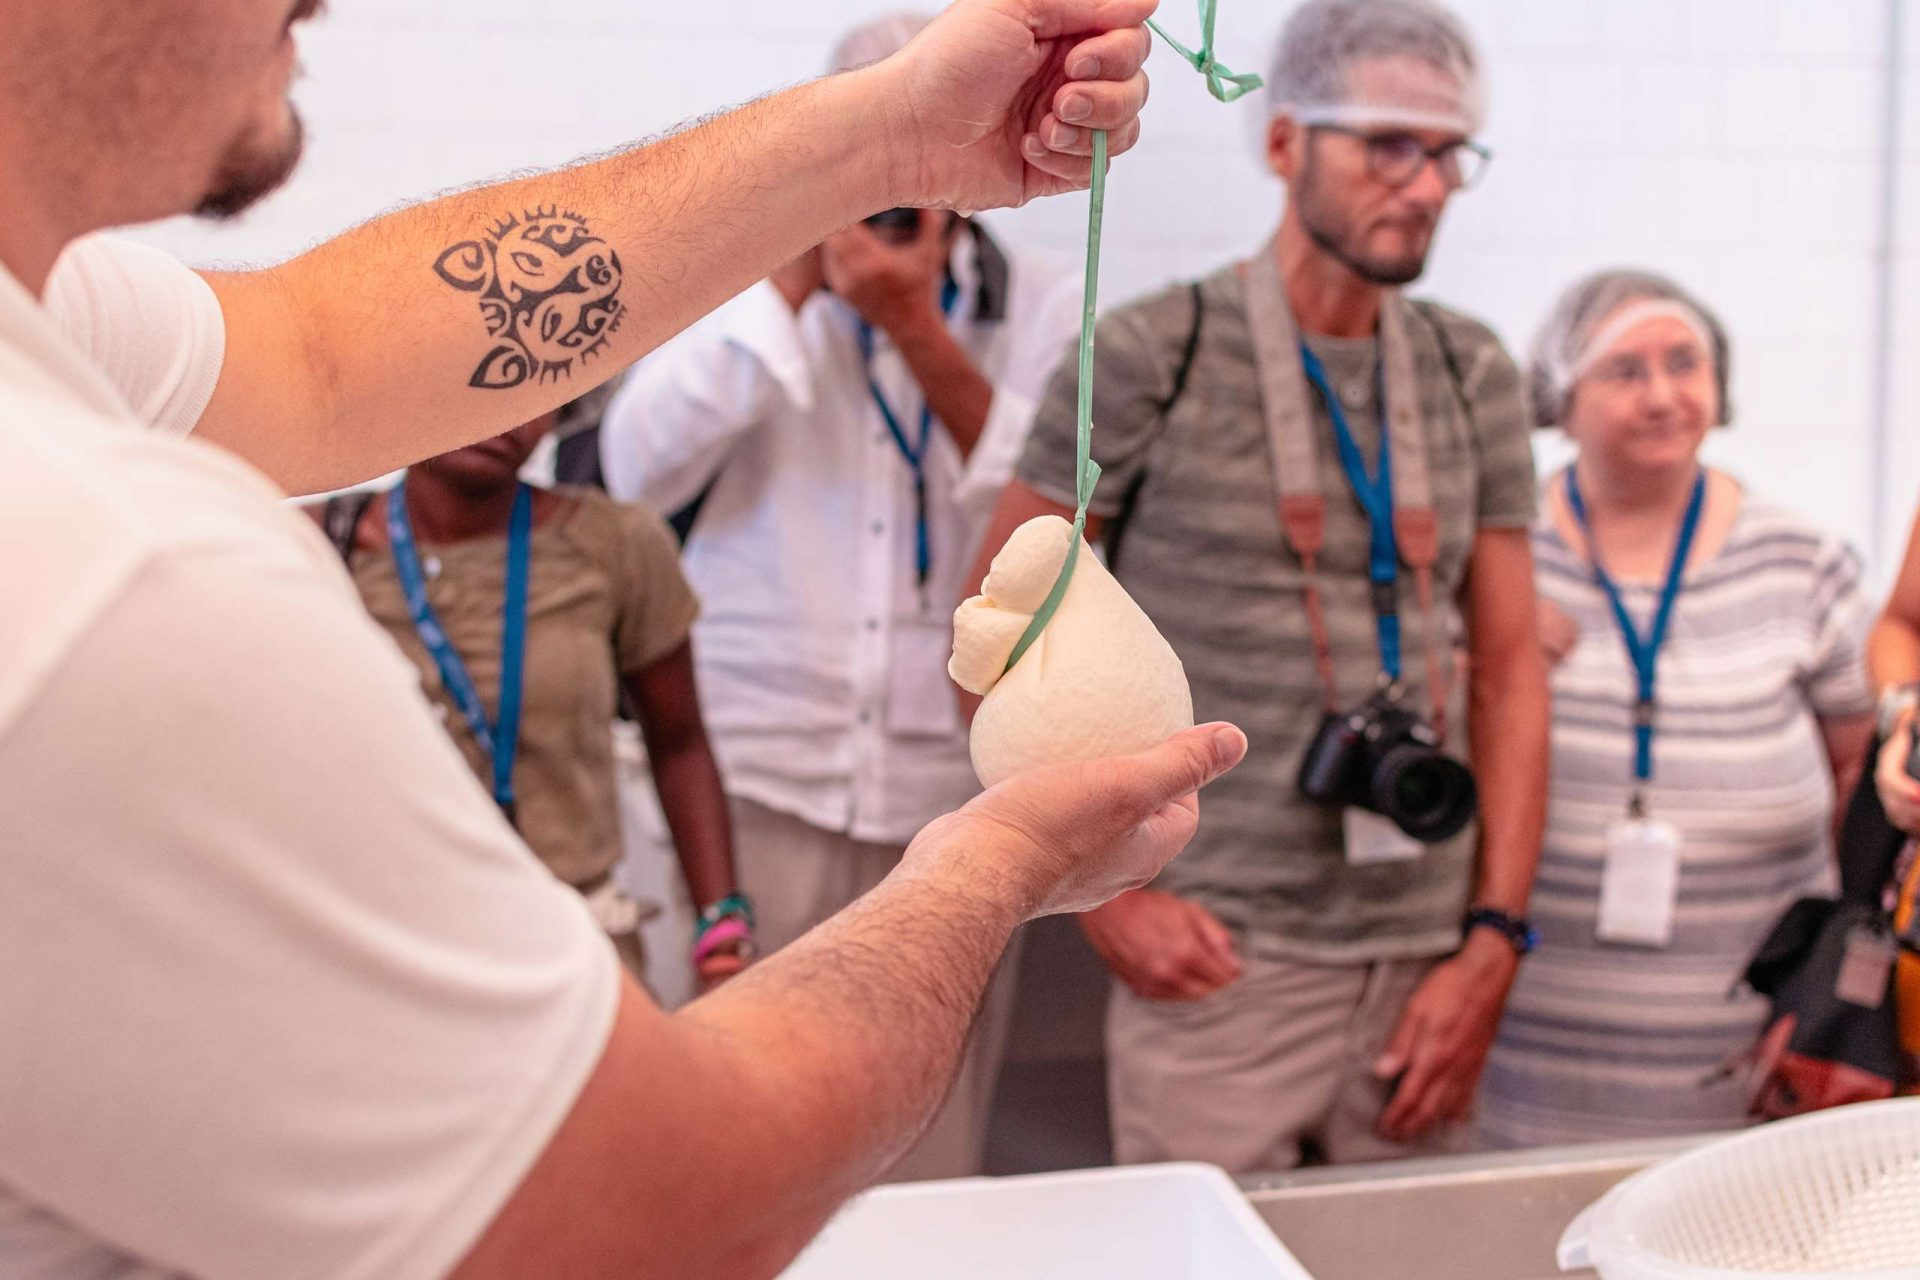 Scamorza made at cheese making class during the Experience Tour in Orsara di Puglia